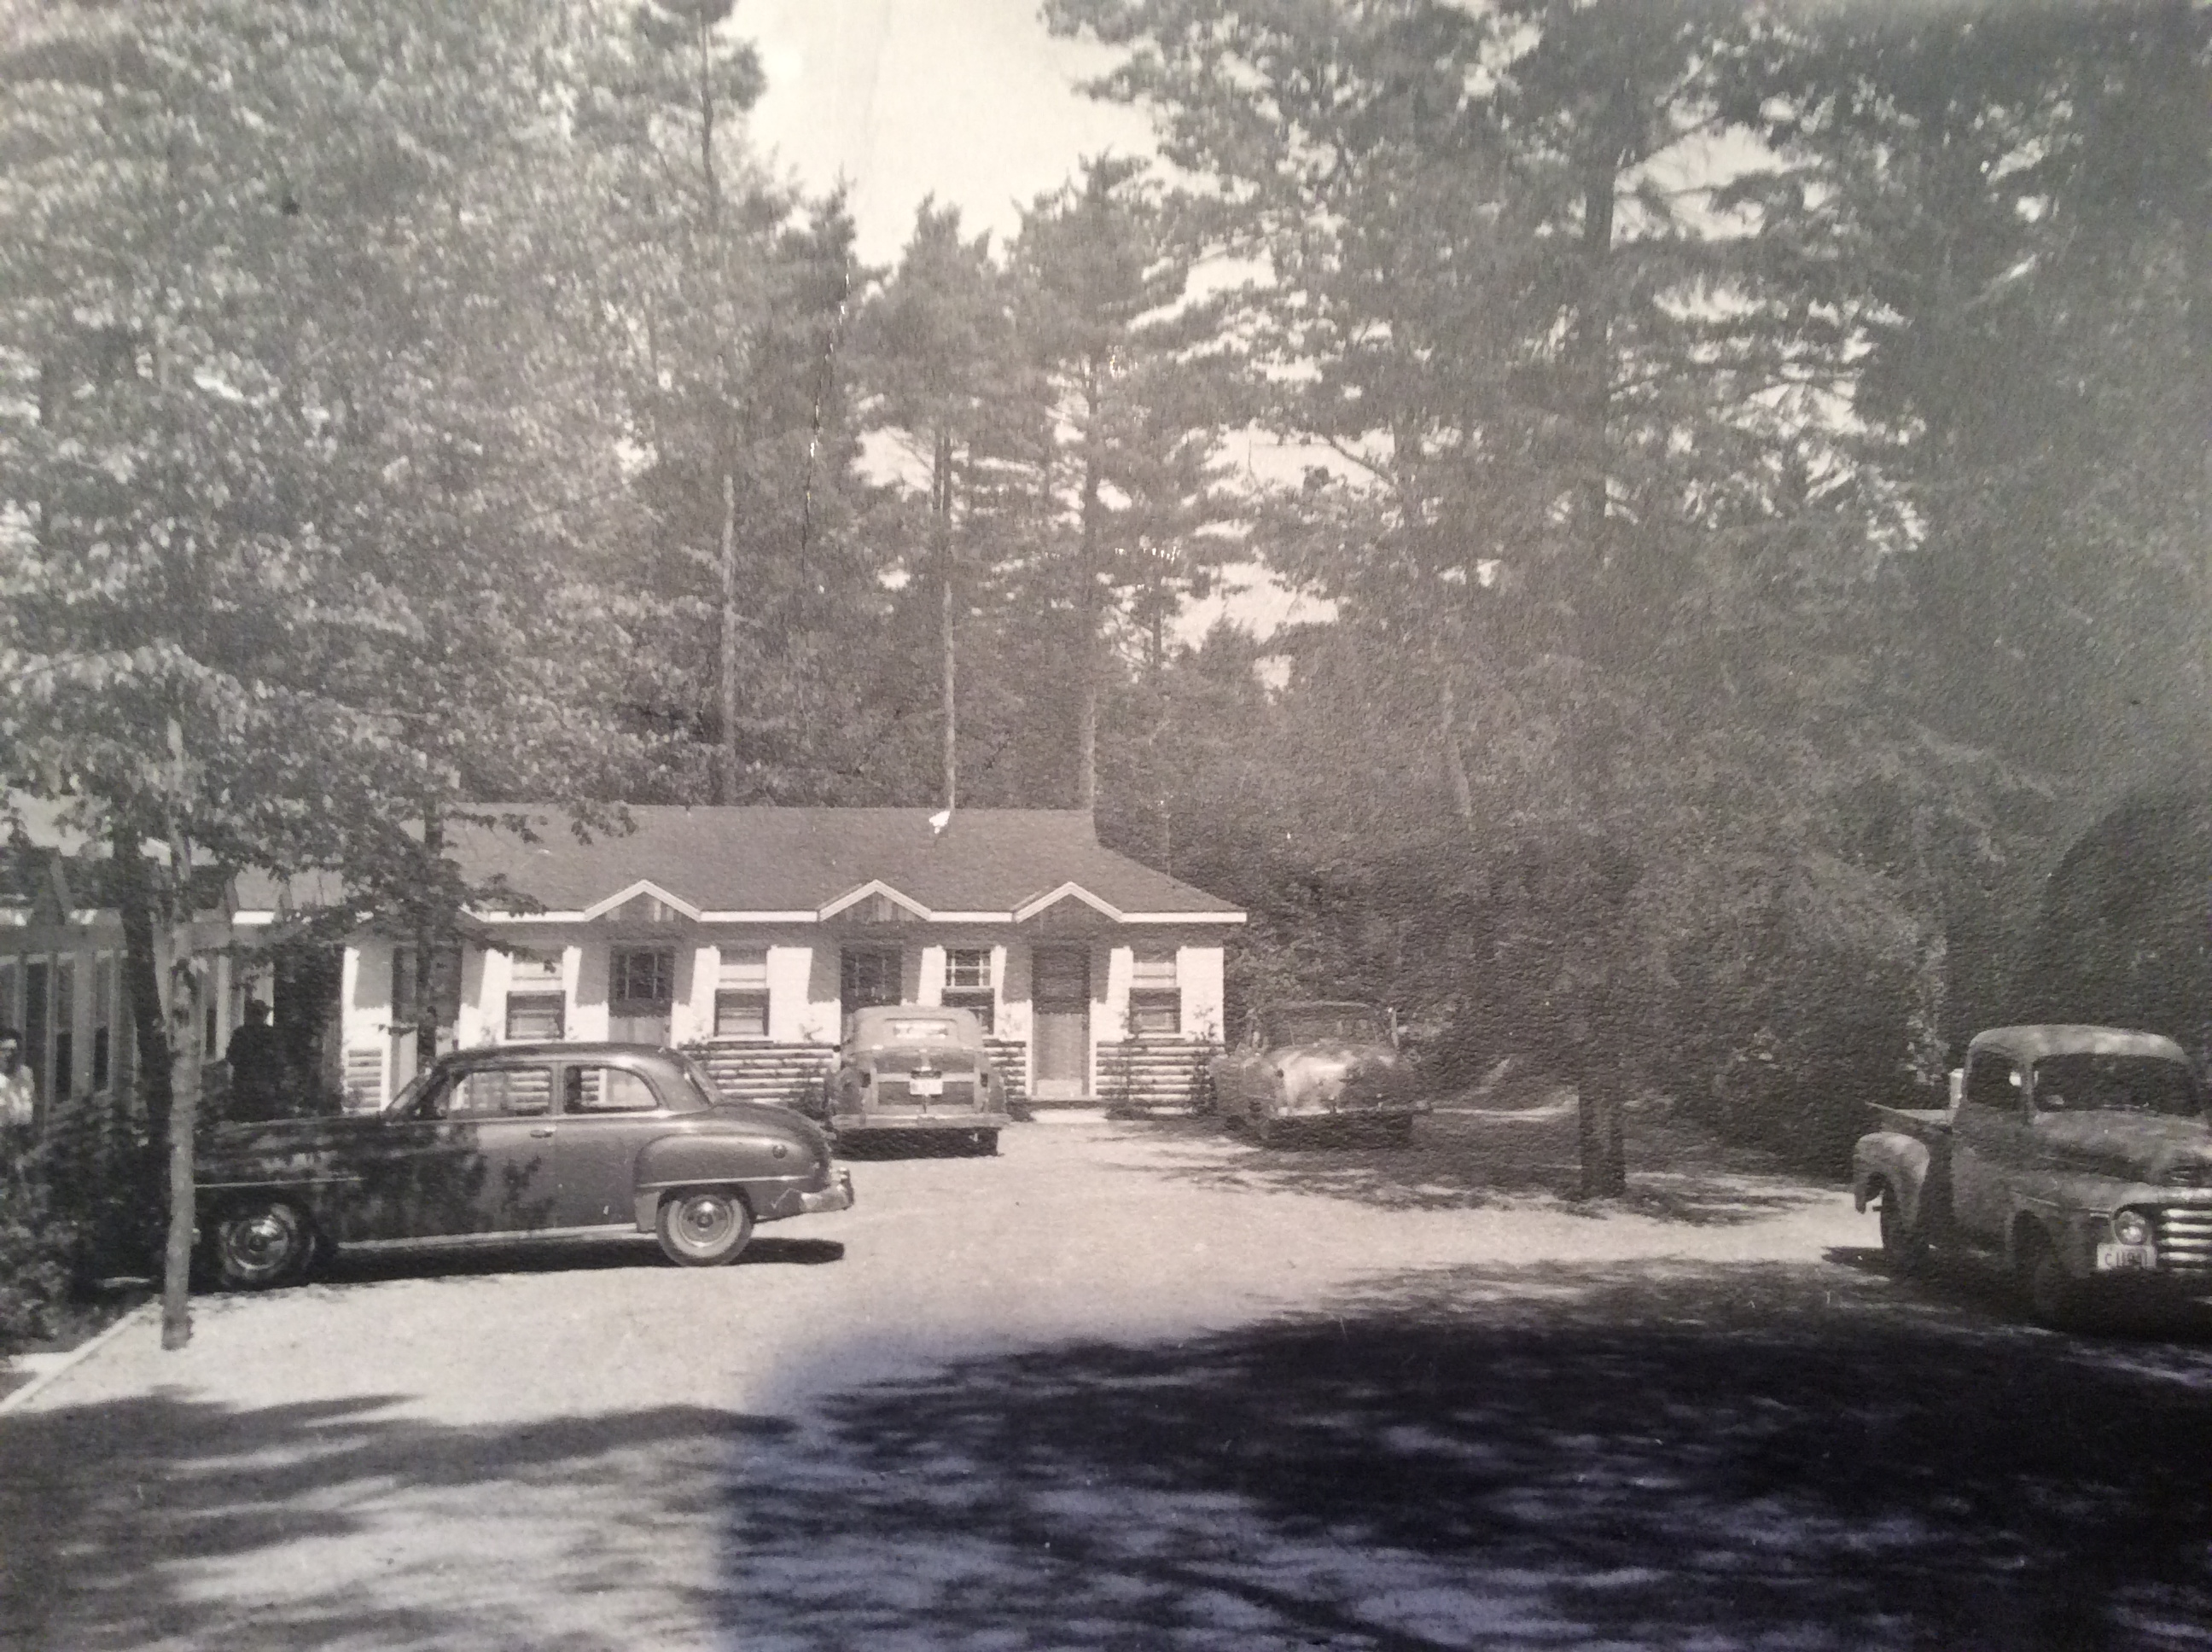 Blue Water Motel picture 1950s